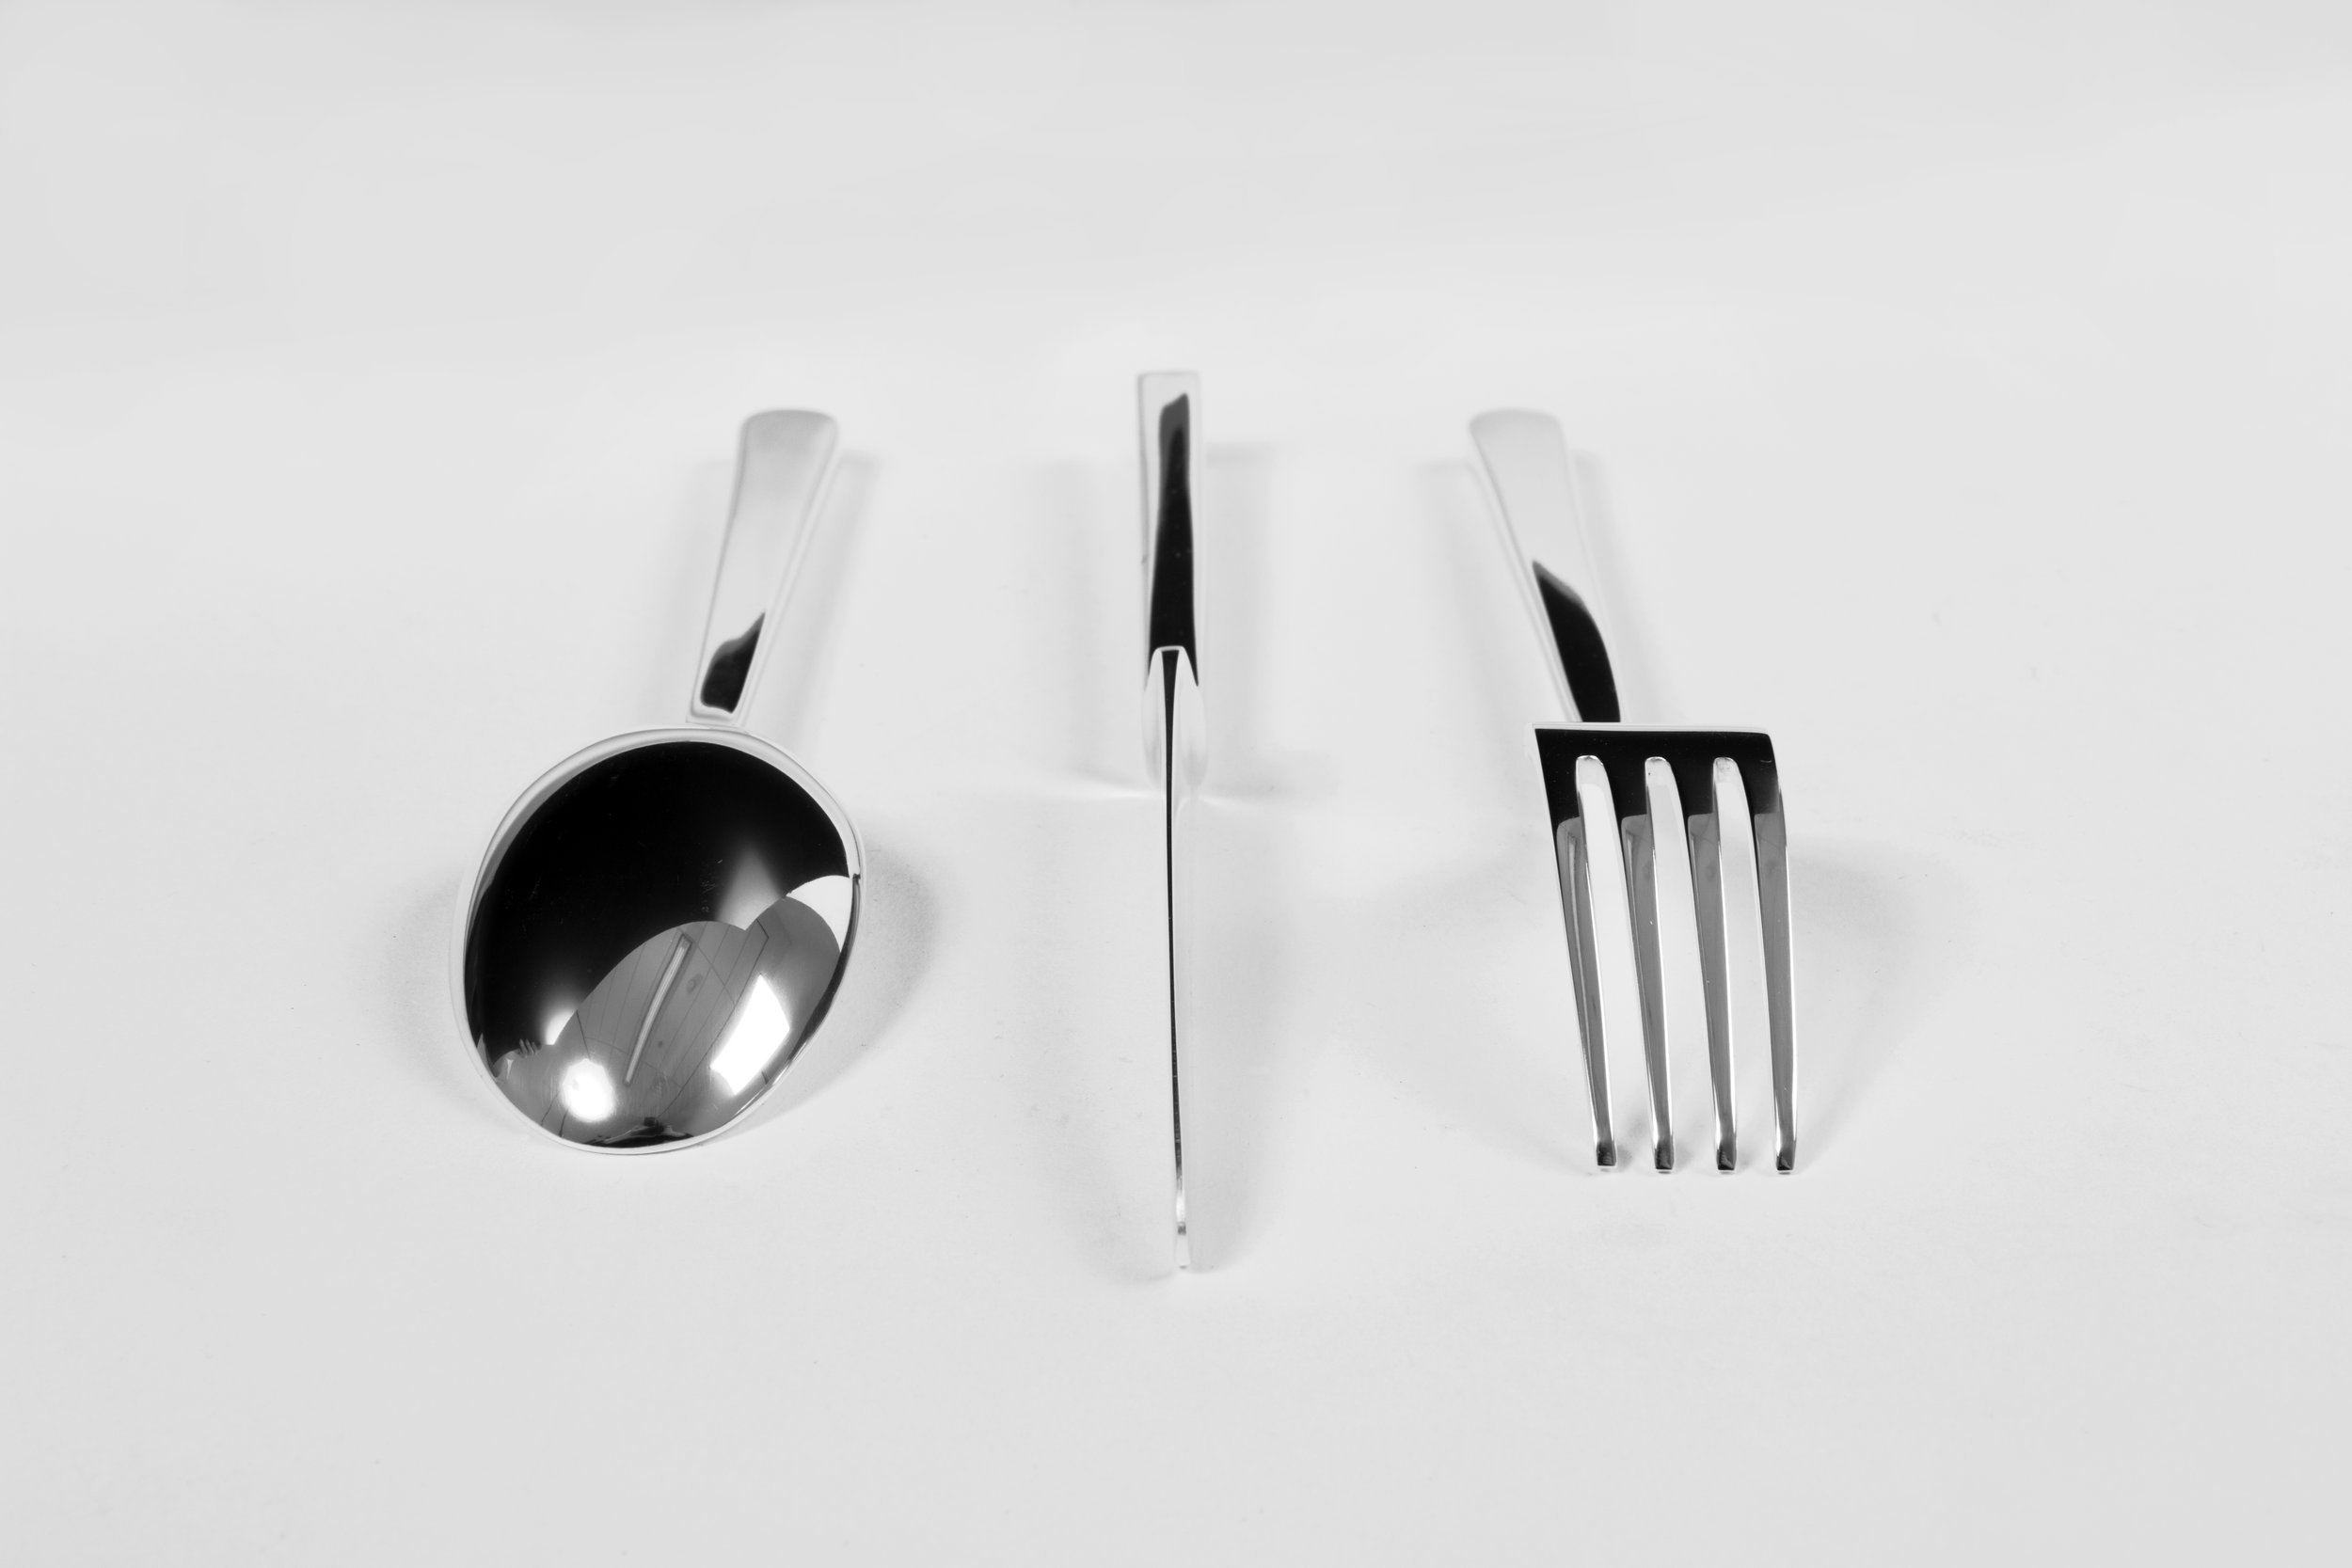 Flatware  | 100% handmade. Cut, hammered, filed and polished flatware prototypes. | Brass, Silver-plated | © Phat Design